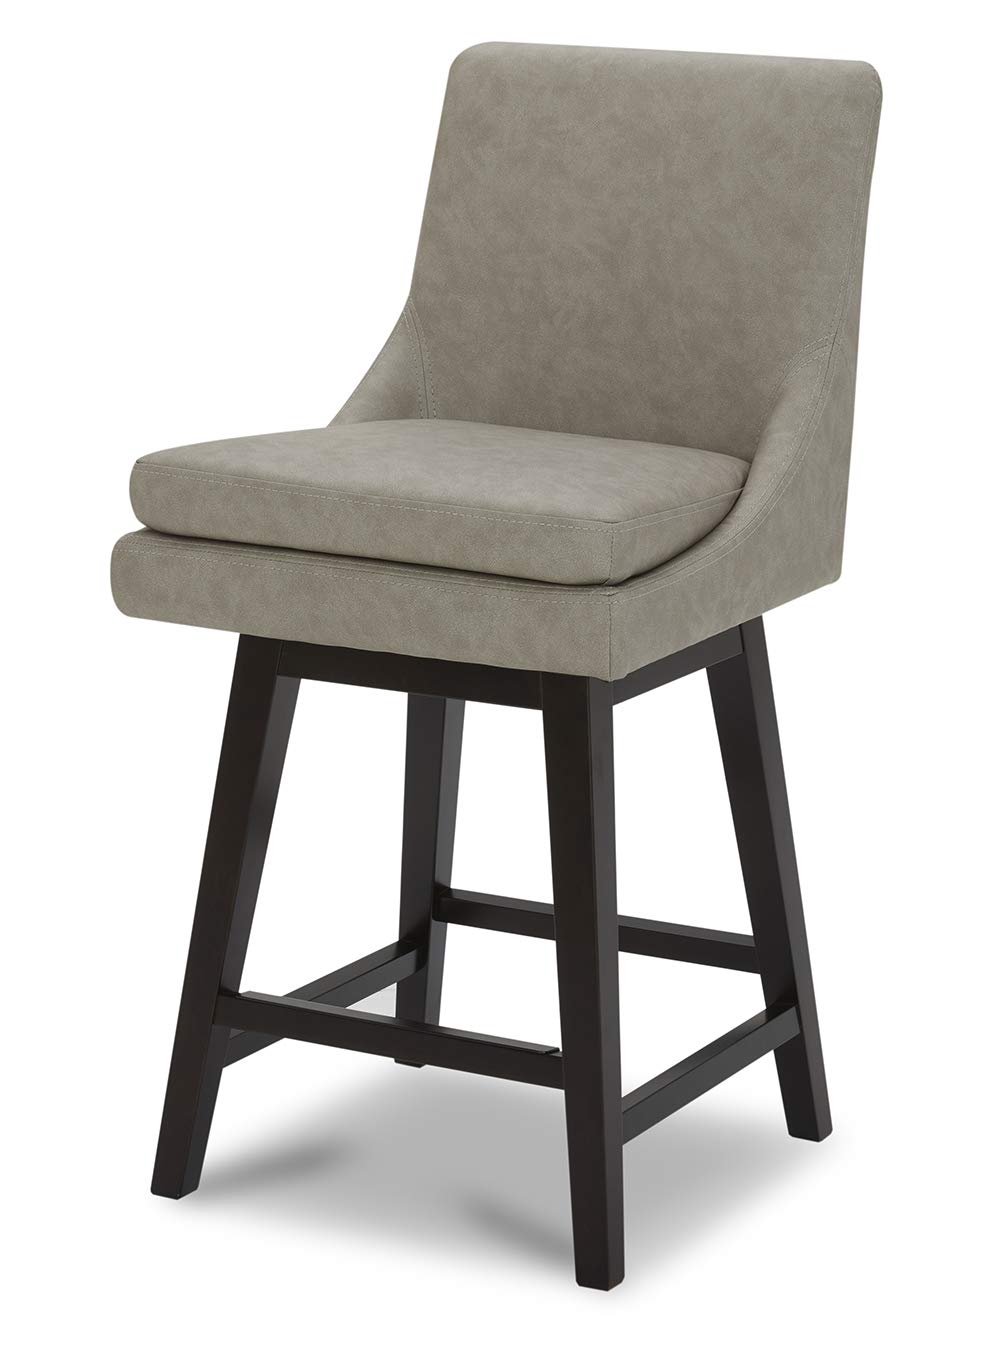 """CHITA Counter Height Swivel Barstool, Upholstered Leather Bar Stool, 26"""" H Seat Height, Stone Grey"""